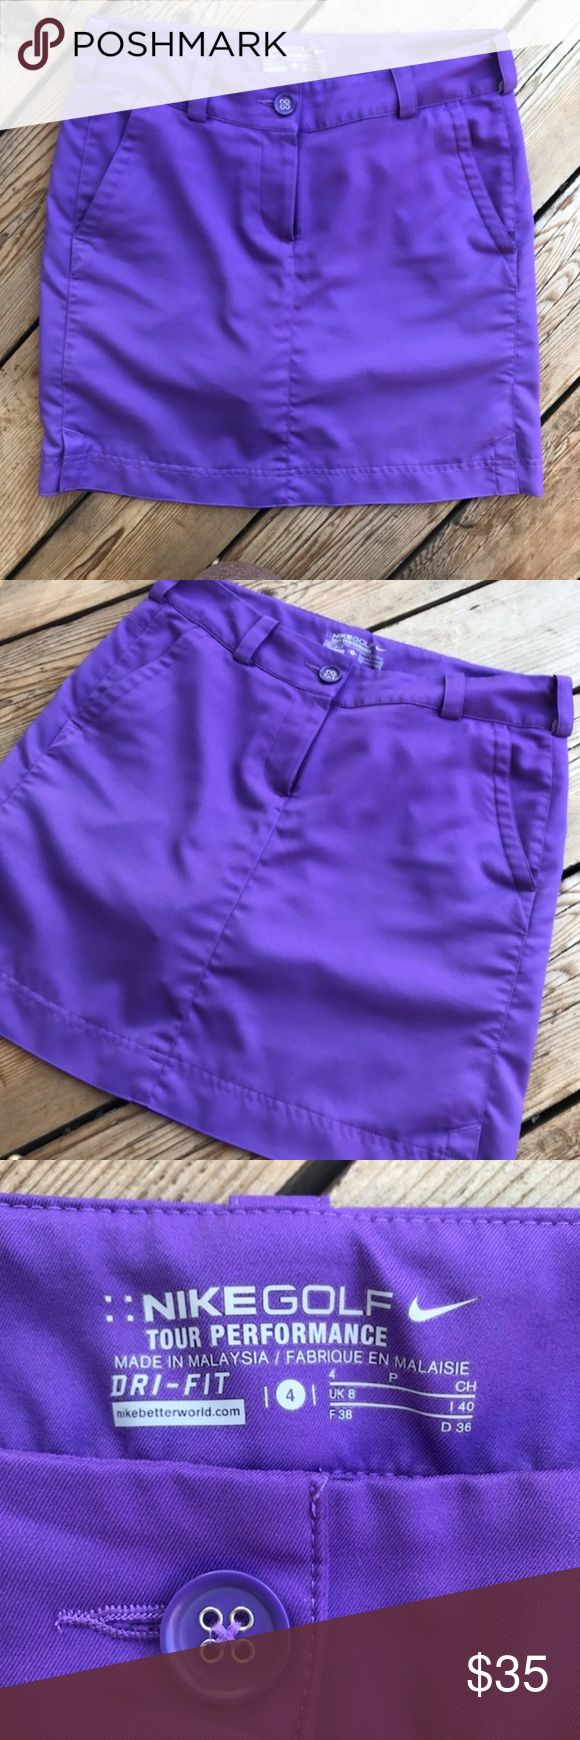 "Nike Dri-Fit Golf Skirt--Purple--Size 4 Nike dri-fit golf skirt with sewn-in shorts. Skirt is 17"" long and the waist is 15"" across. Short inseam is 3 1/2"". Front and back pockets on either side, perfect to hold tees or a pencil. Skirt is in excellent and lightly-worn condition. Shows no signs of wear. Nike Shorts Skorts"